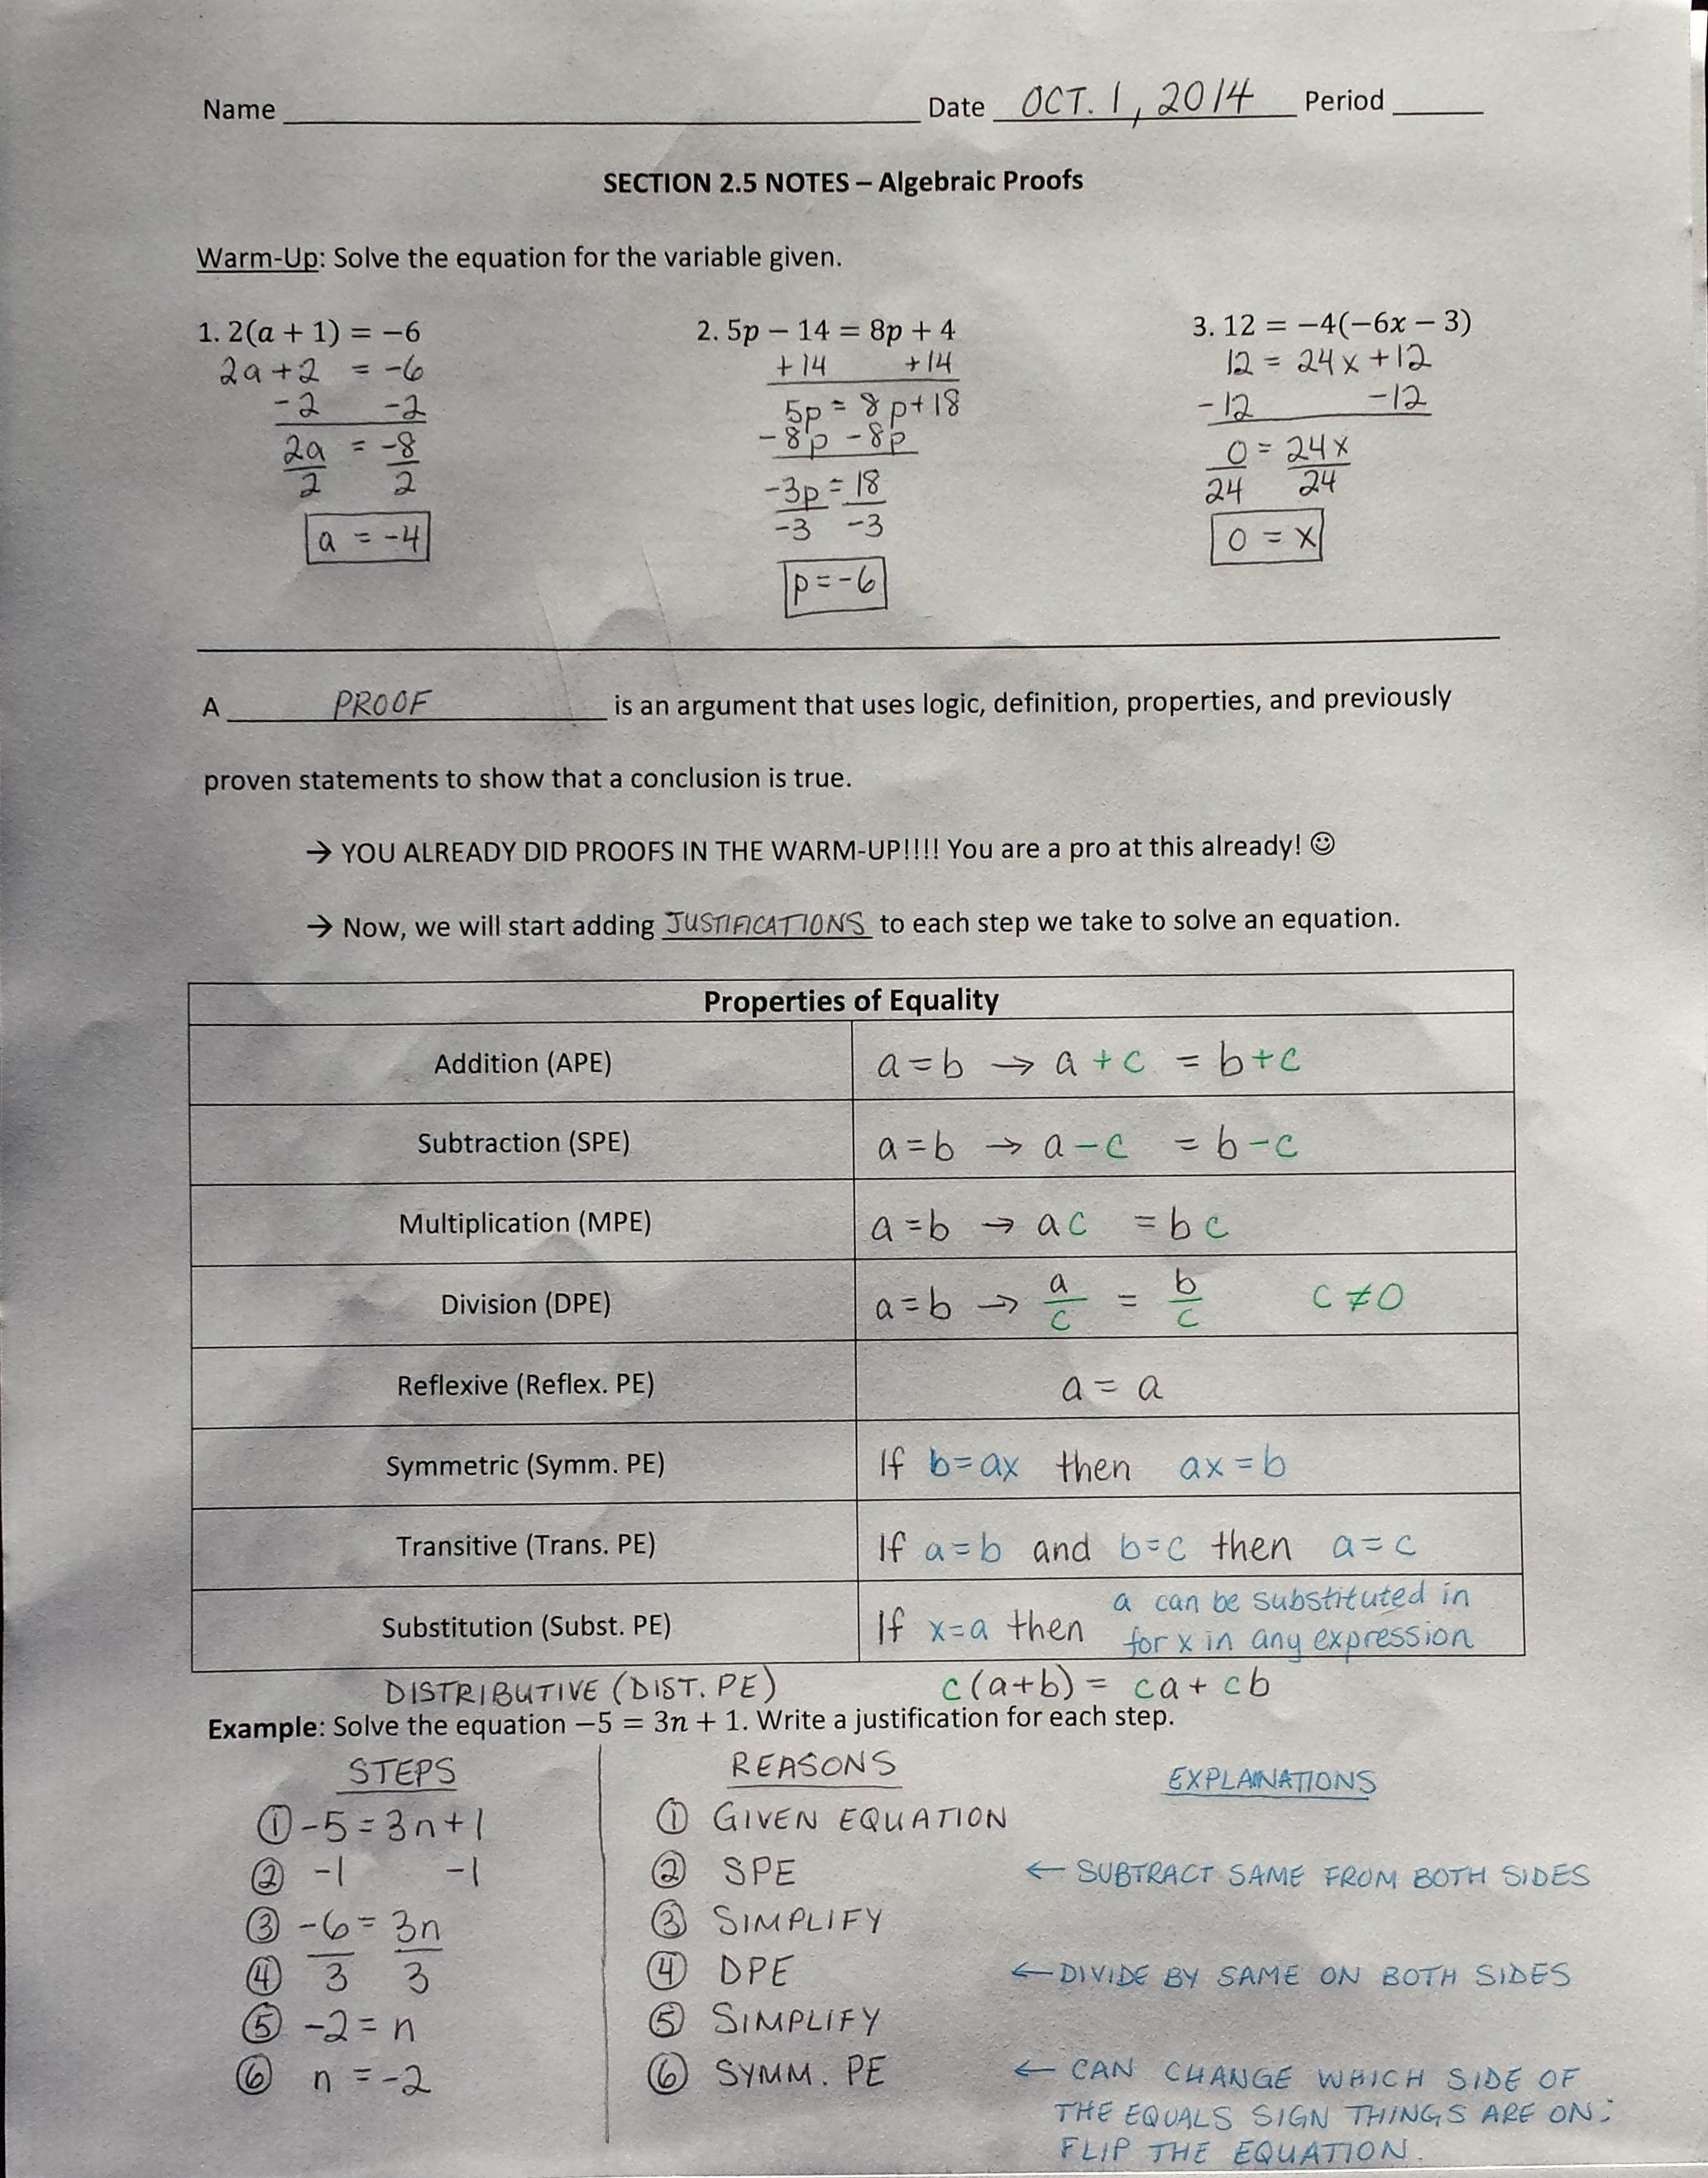 Mrs Garnet Mrs Garnet at PVPHS – Algebraic Proofs Worksheet with Answers